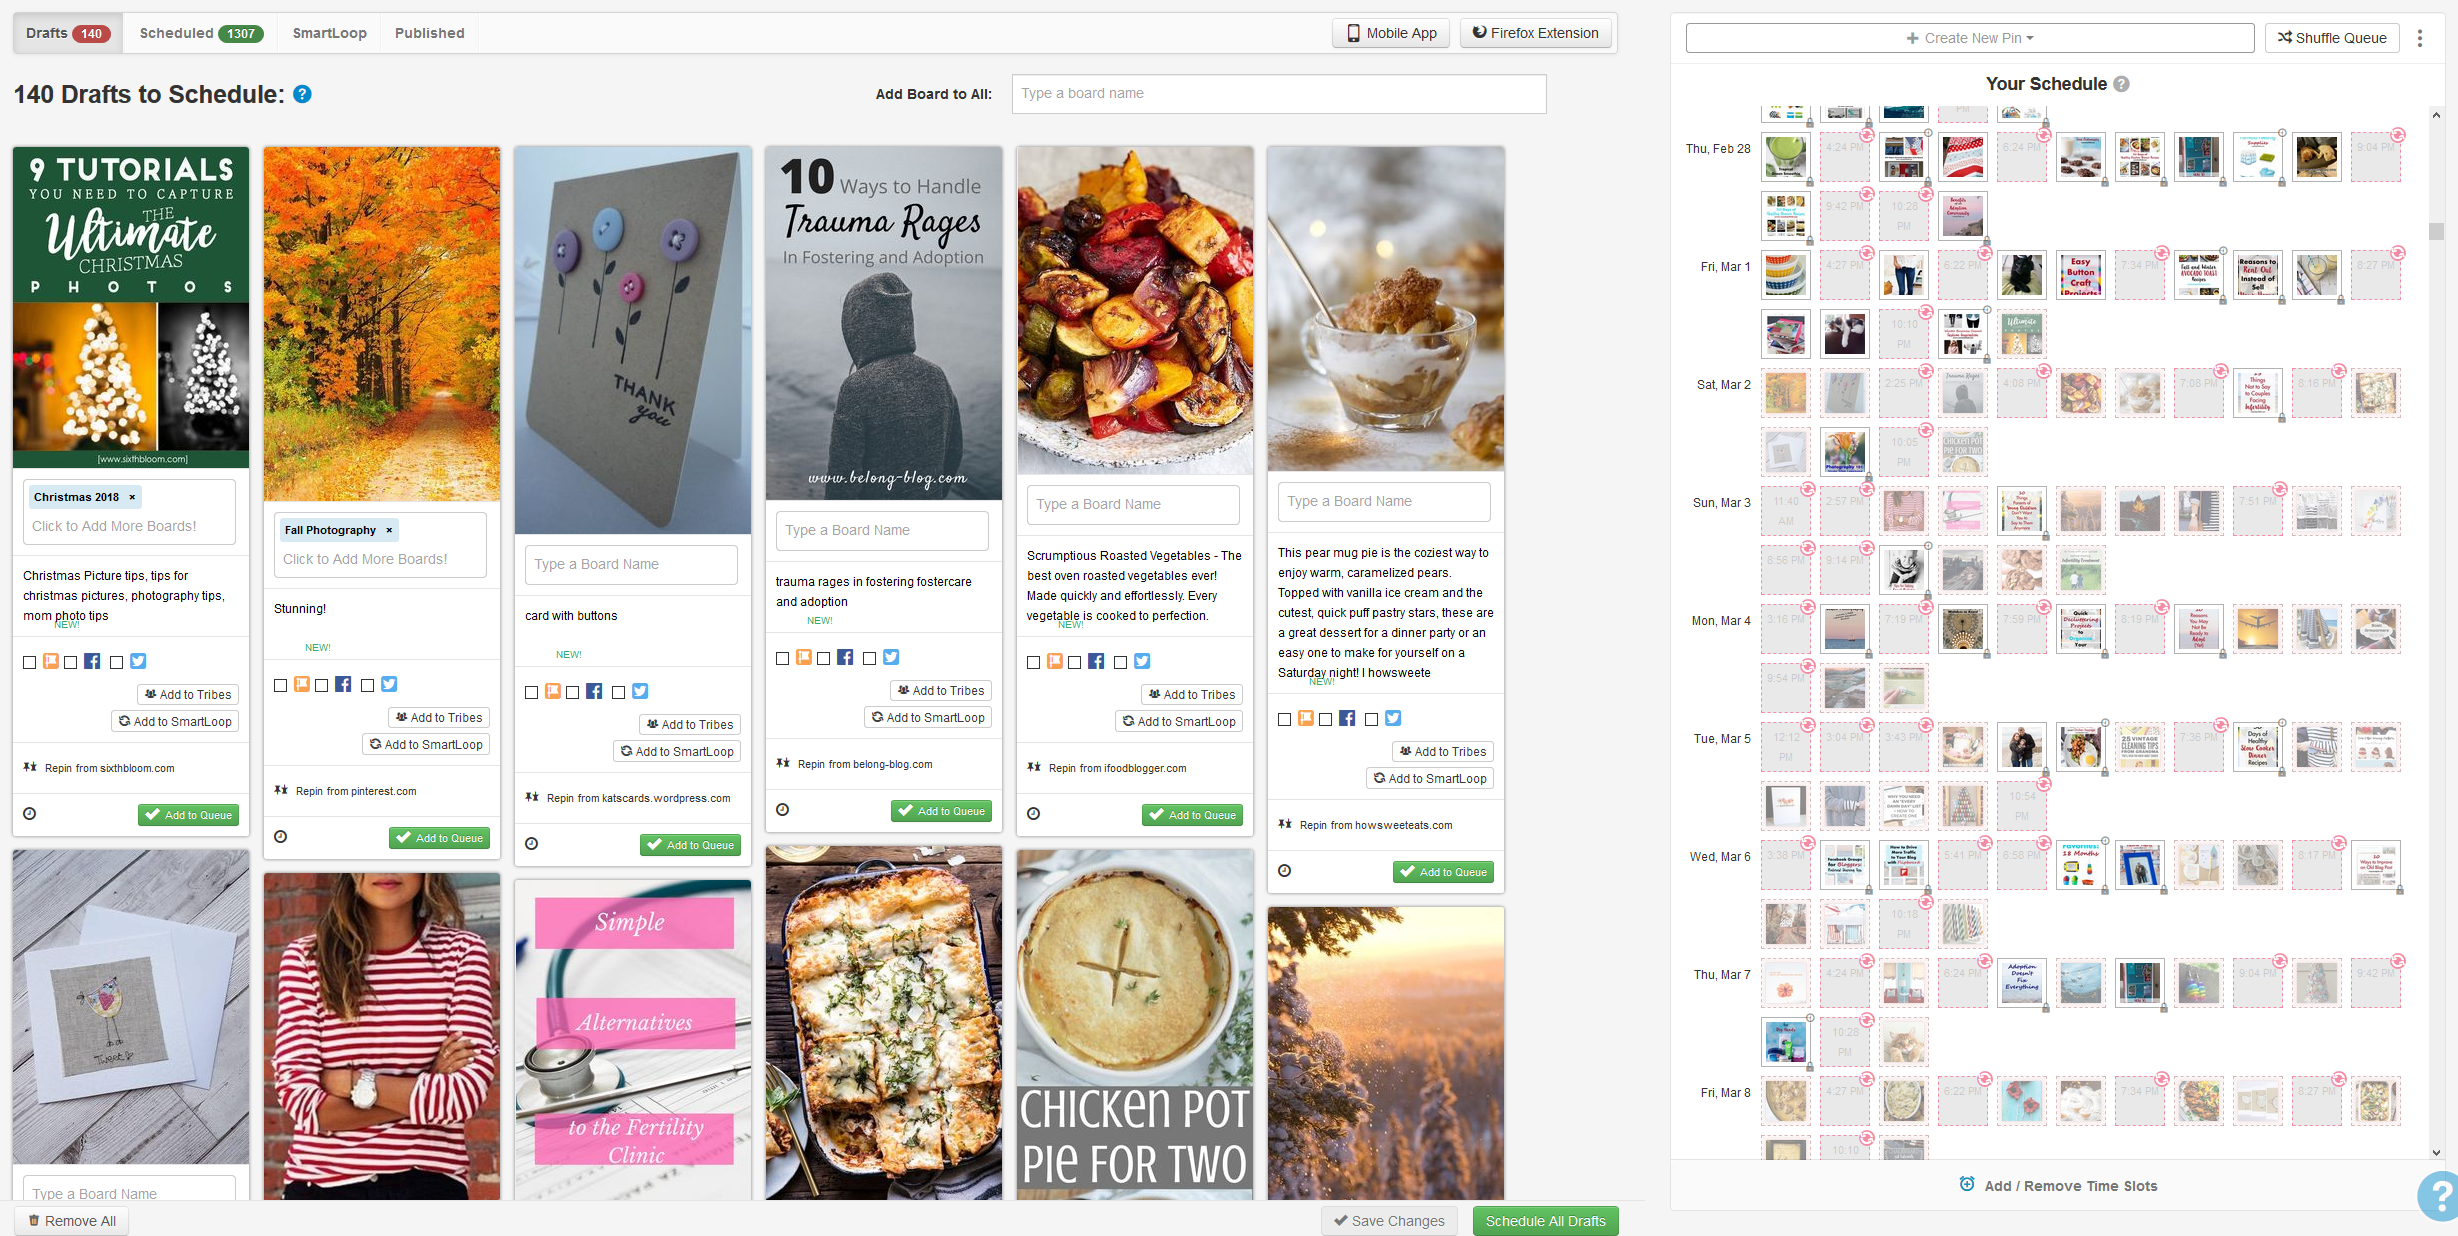 How to Increase Your Reach and Visibility on Pinterest - Tailwind Scheduling | https://www.roseclearfield.com